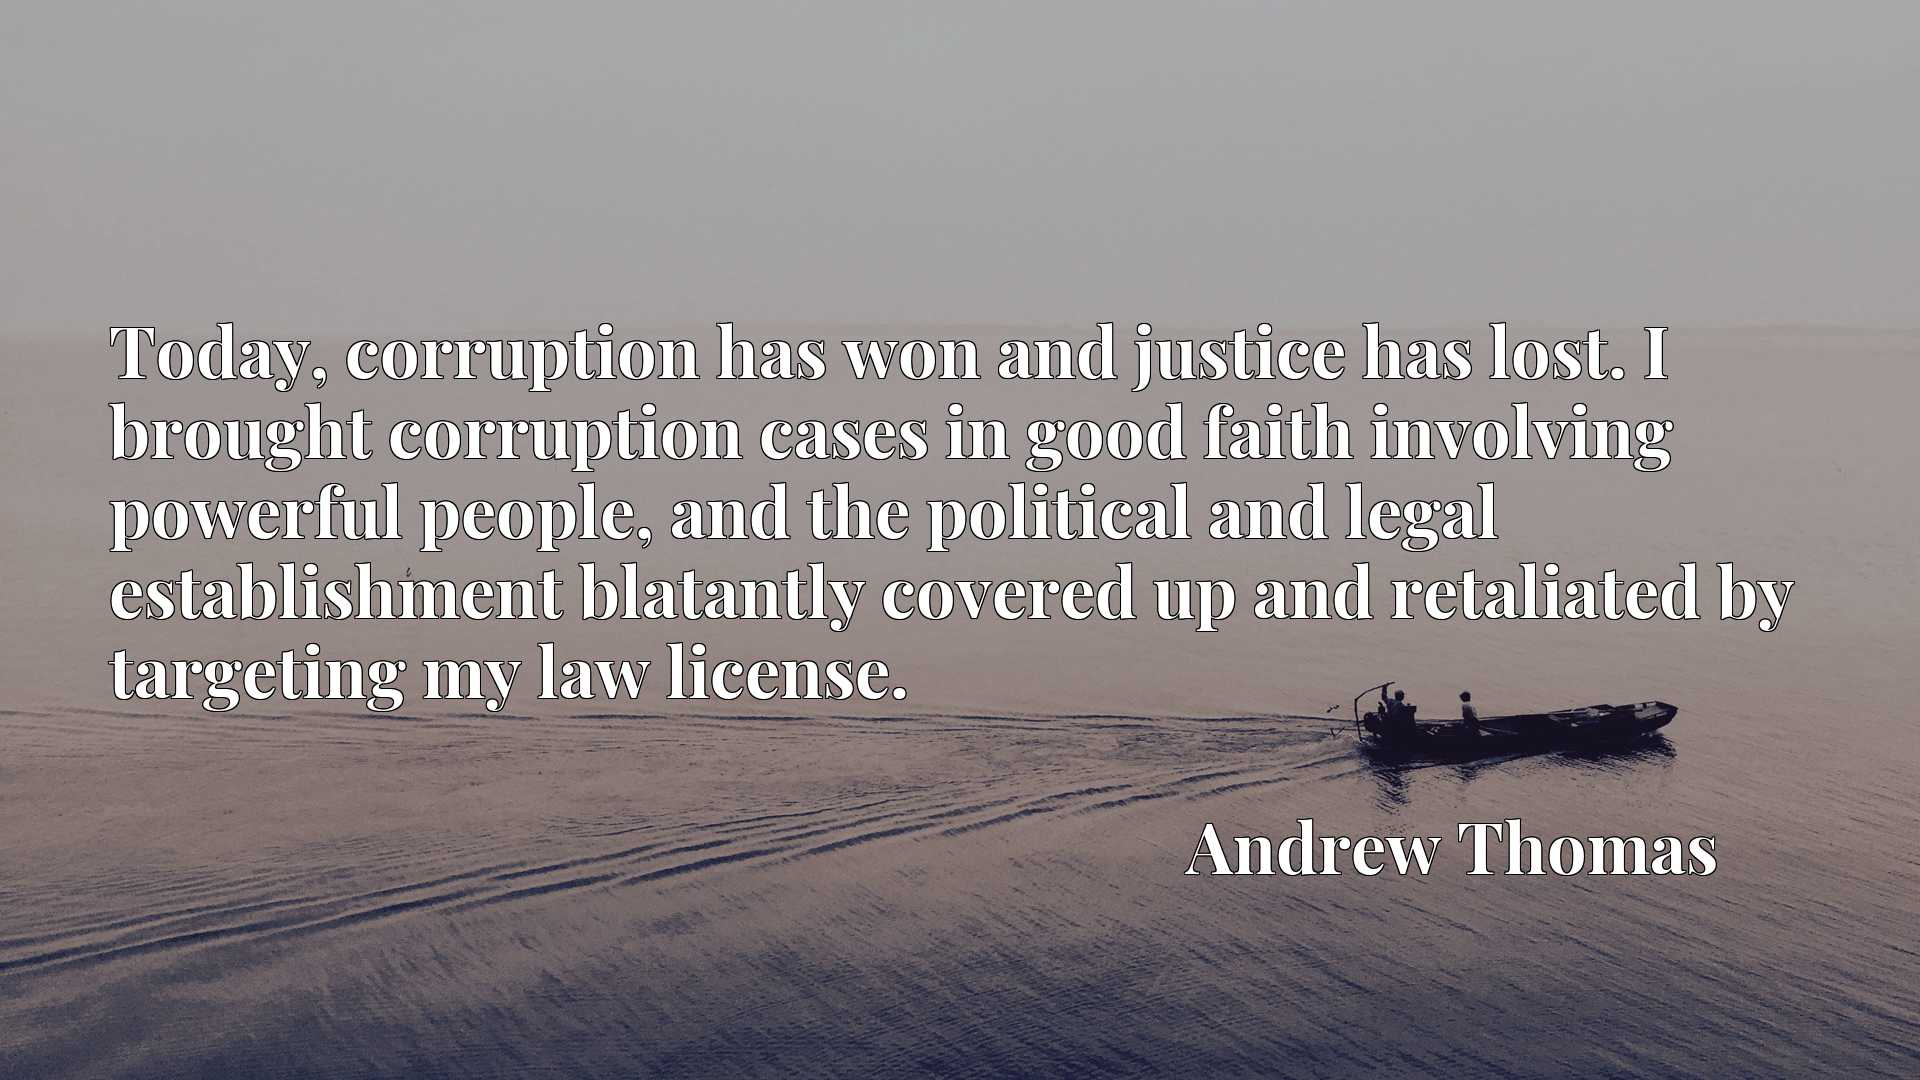 Today, corruption has won and justice has lost. I brought corruption cases in good faith involving powerful people, and the political and legal establishment blatantly covered up and retaliated by targeting my law license.